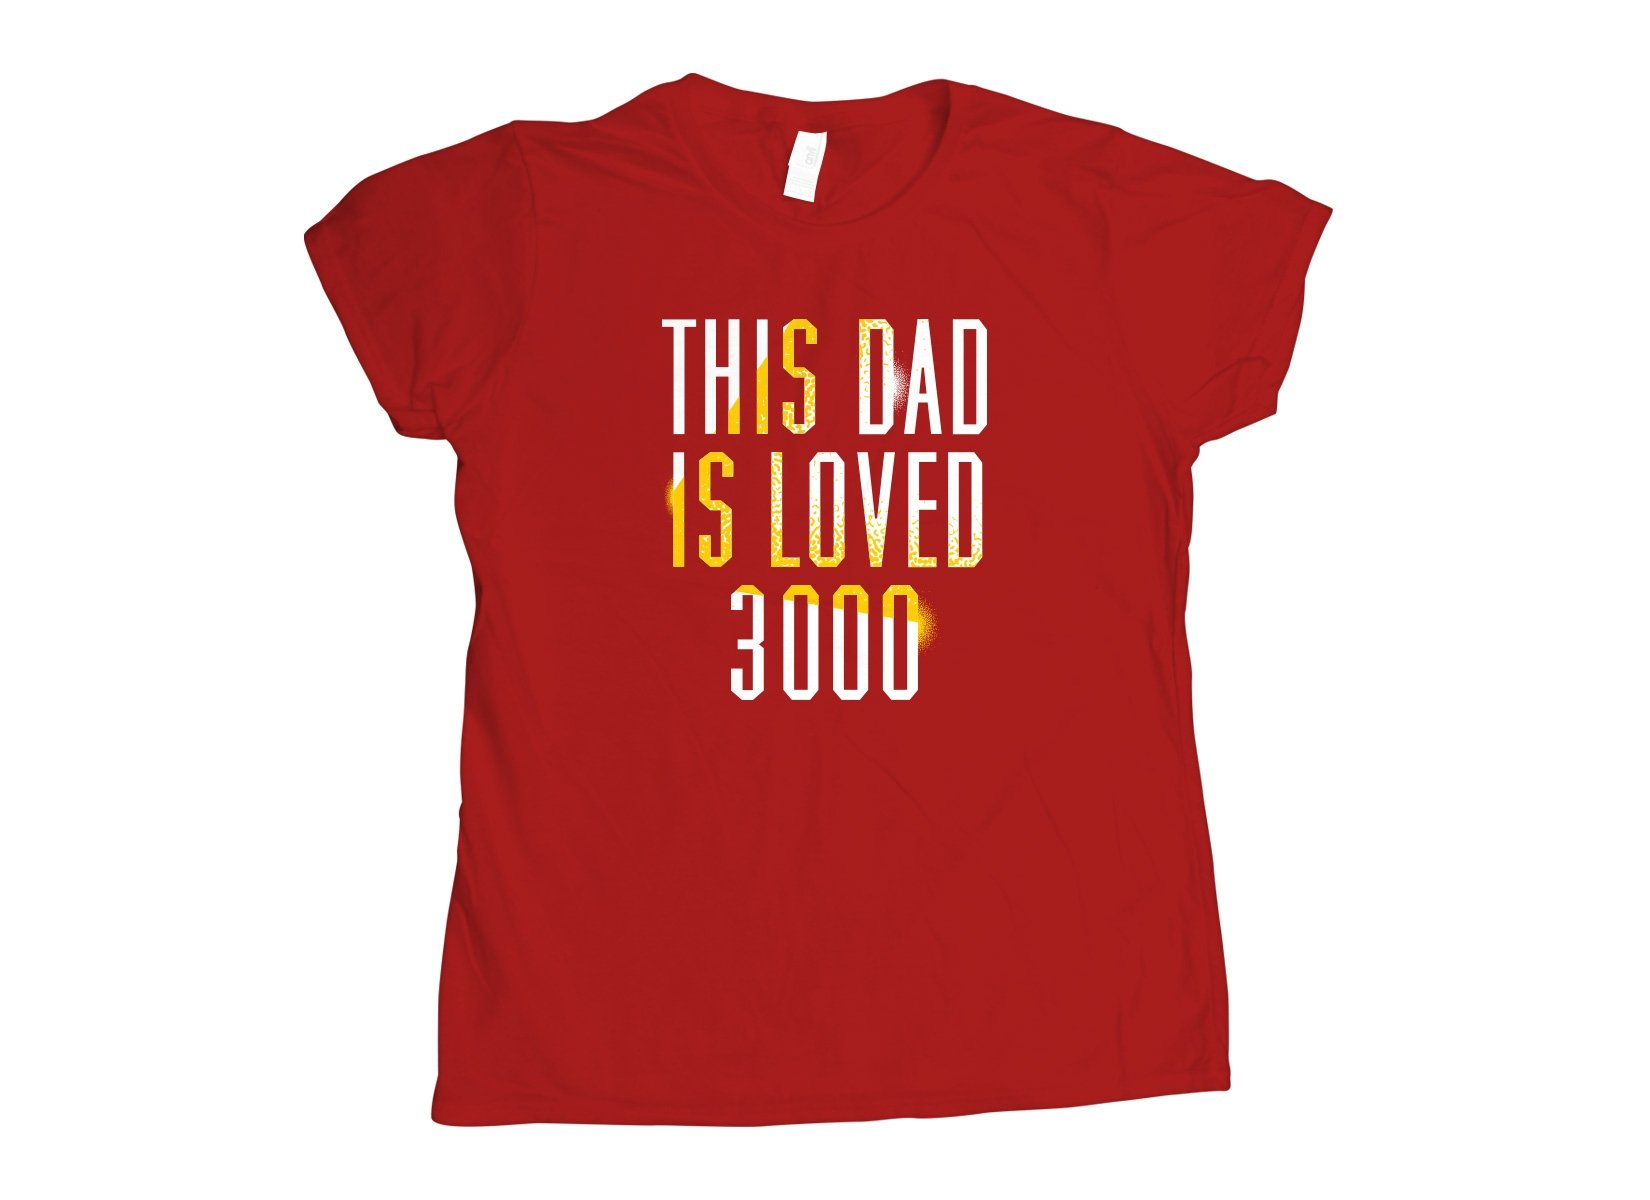 This Dad Is Loved 3000 on Womens T-Shirt